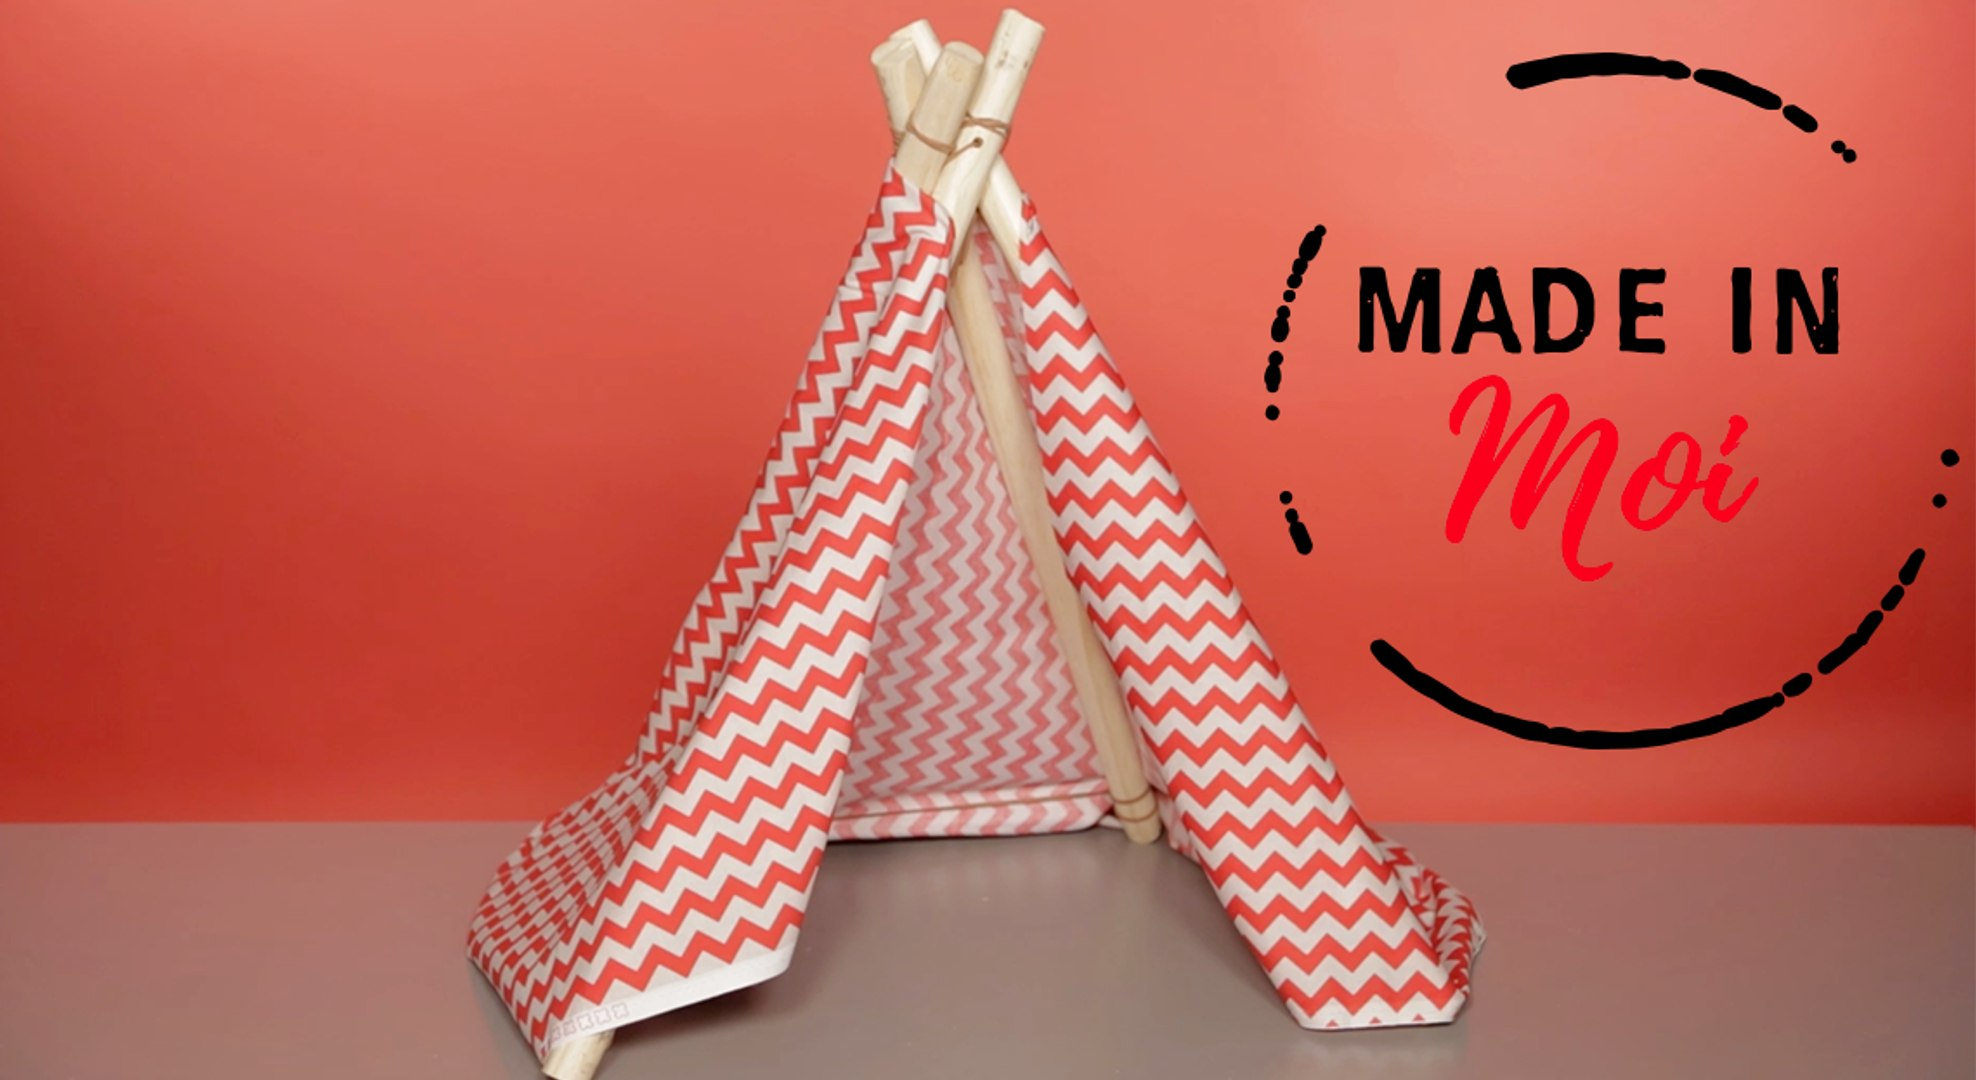 Tipi Pour Chat A Fabriquer made in moi : comment fabriquer un tipi pour chat ?